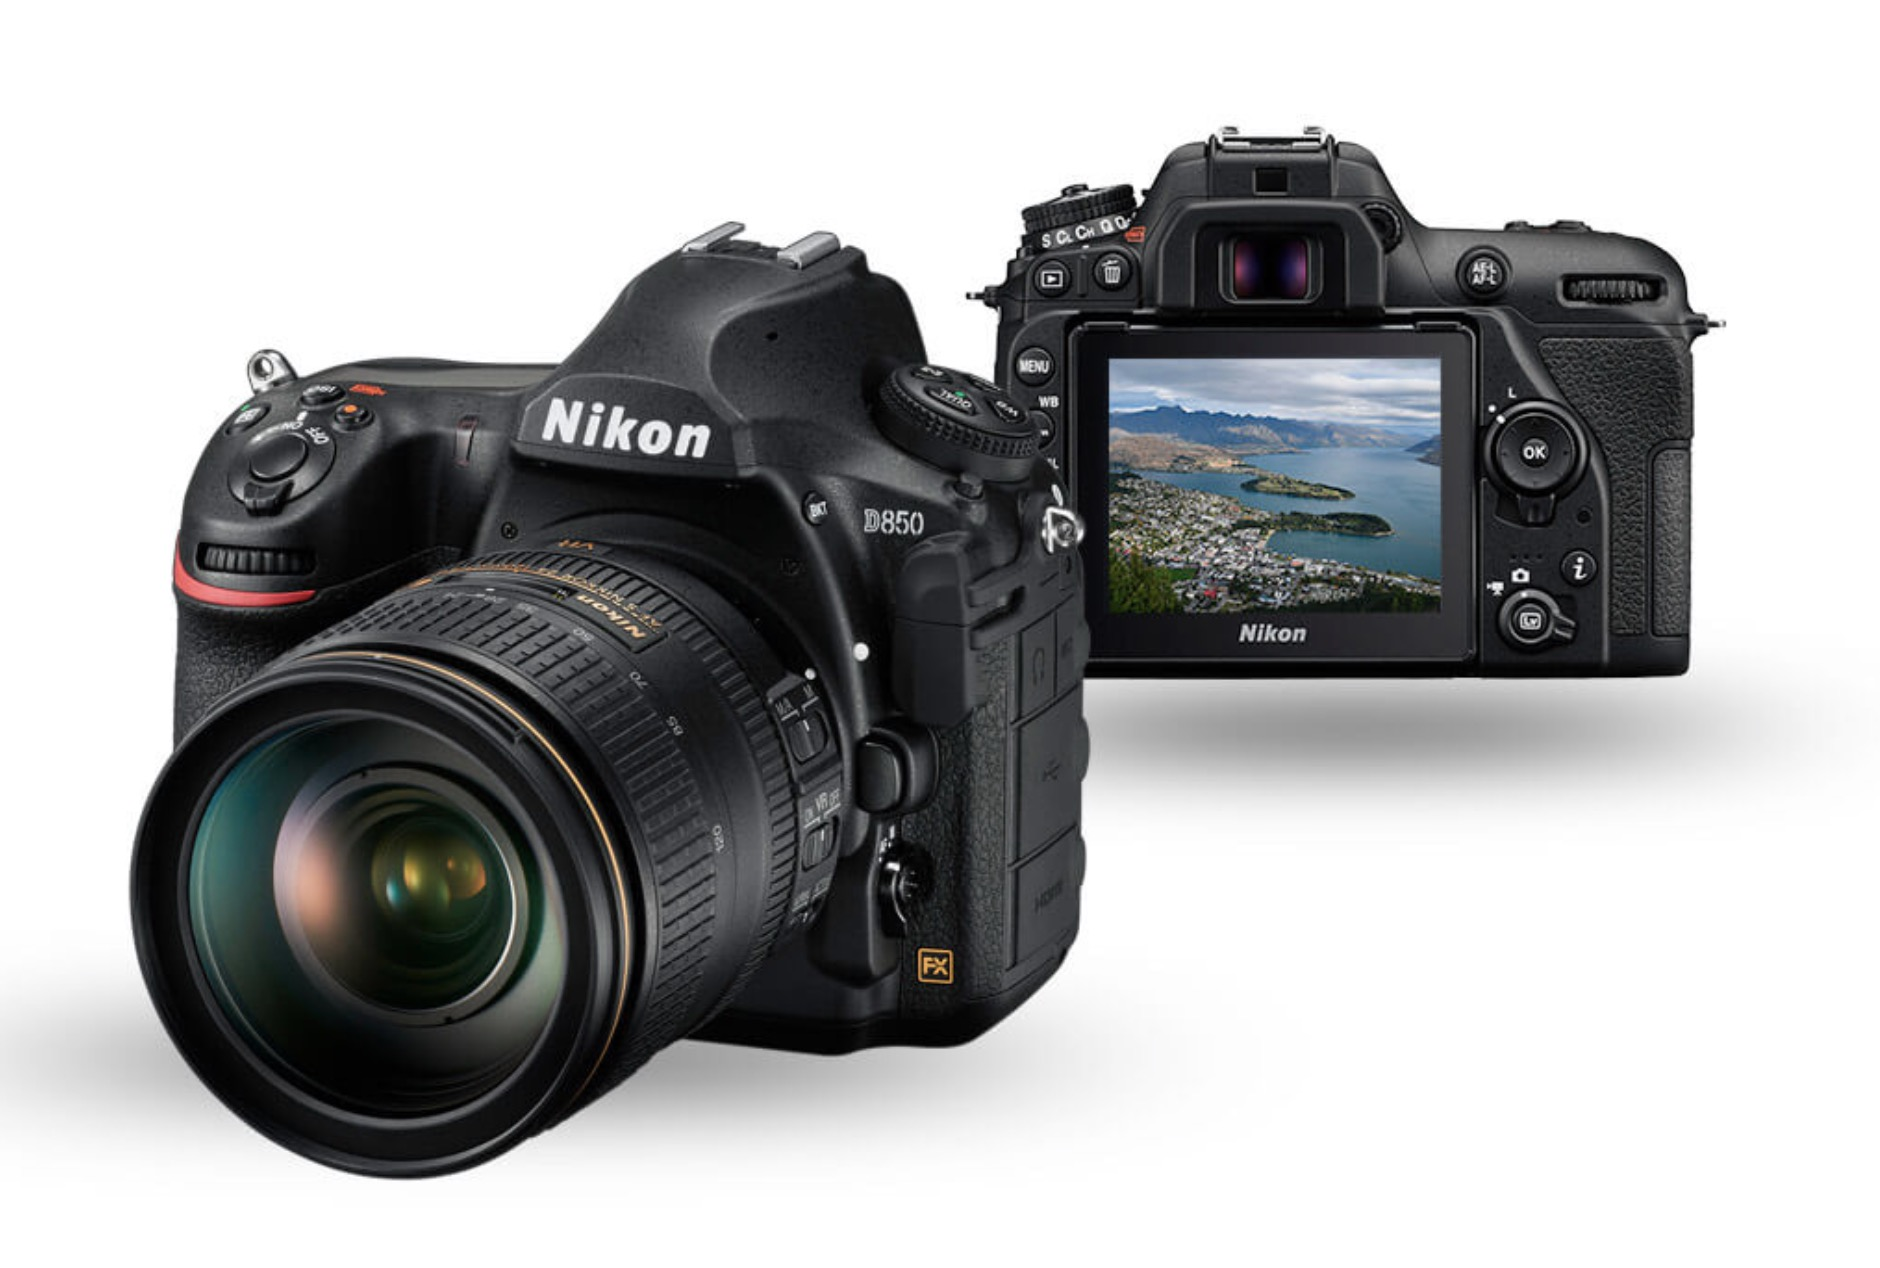 Nikon US's 'Capture the Savings' event offers instant